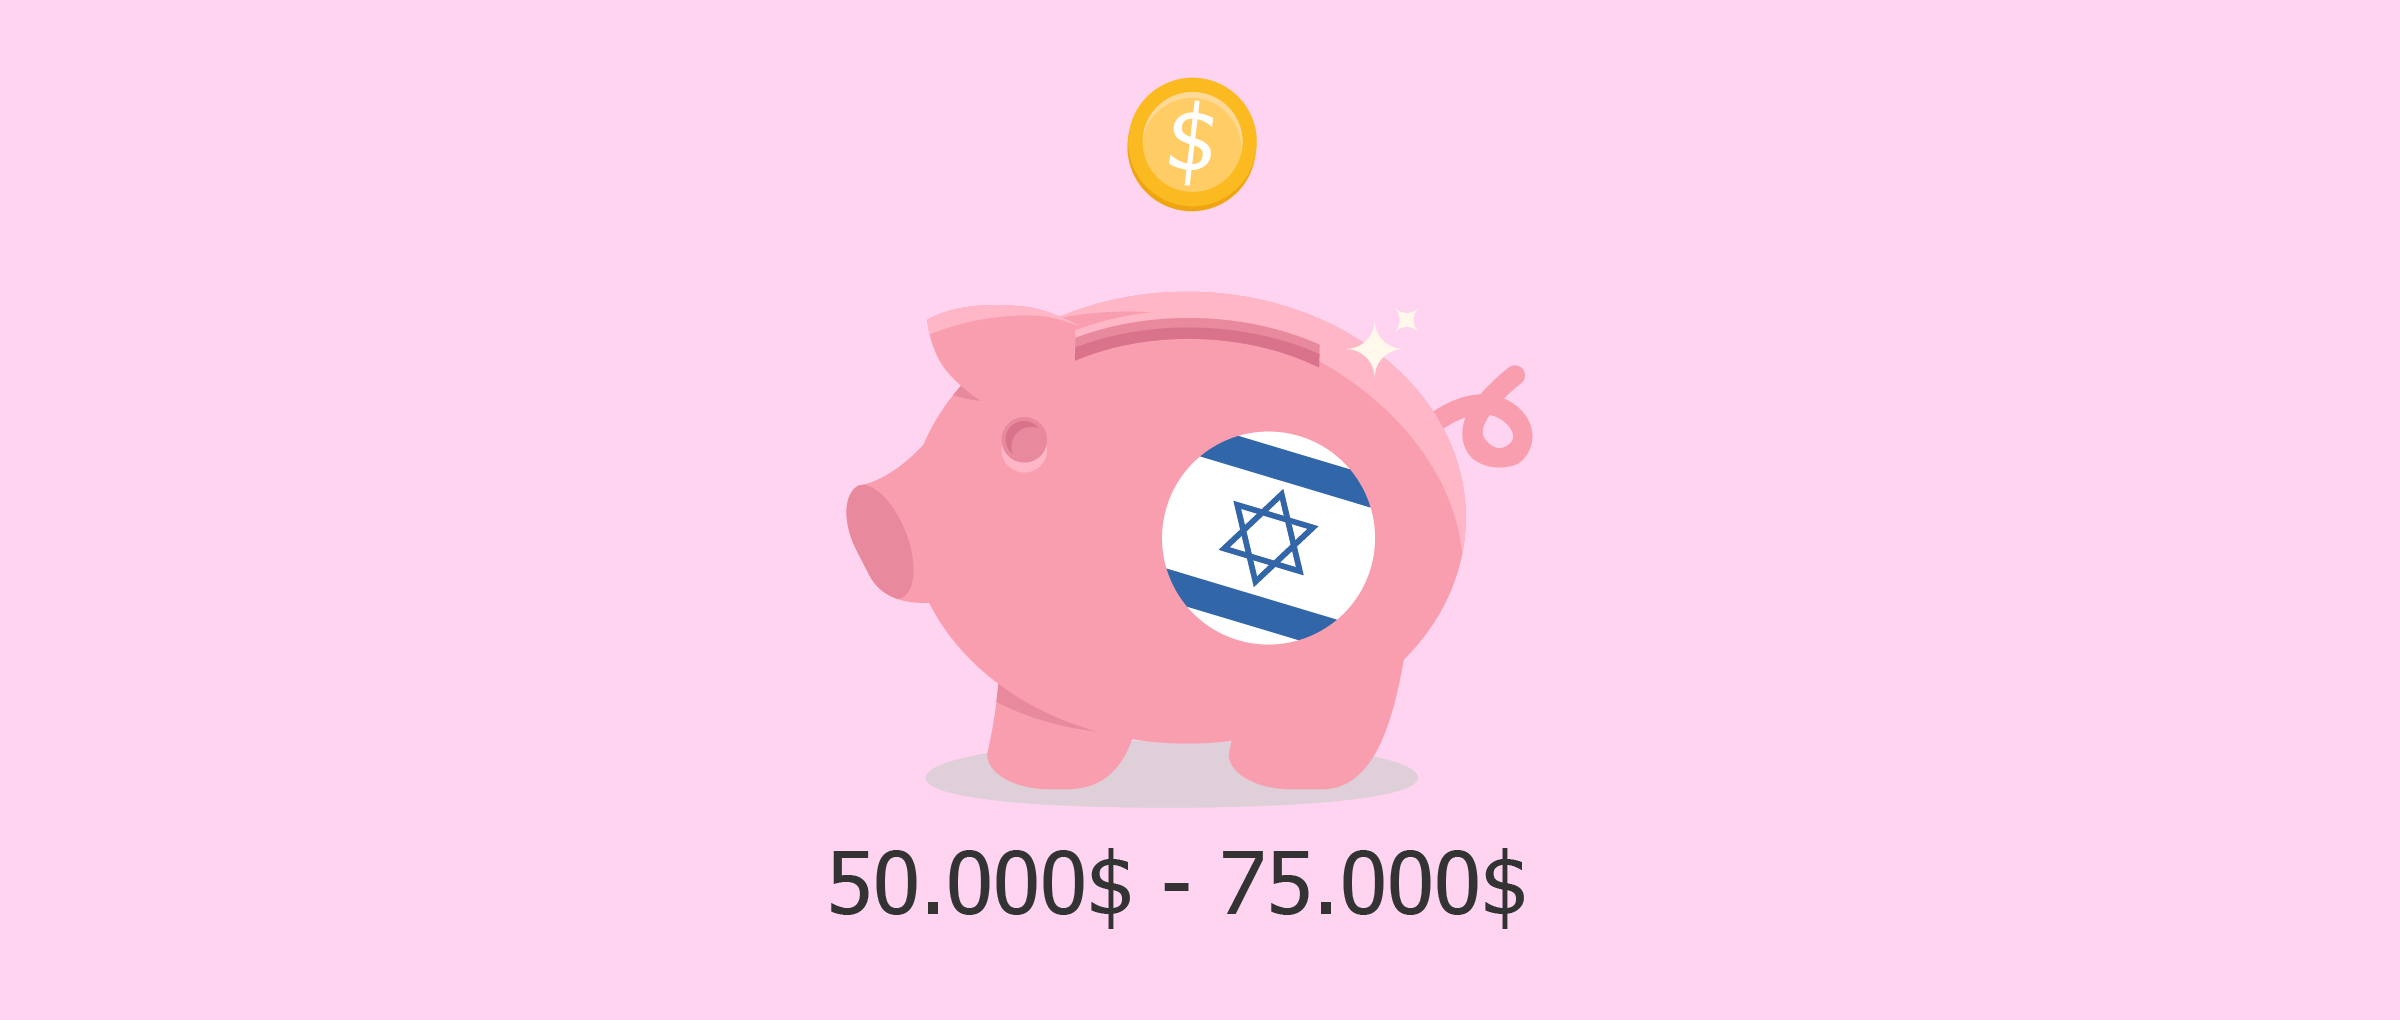 Costs of surrogacy in Israel